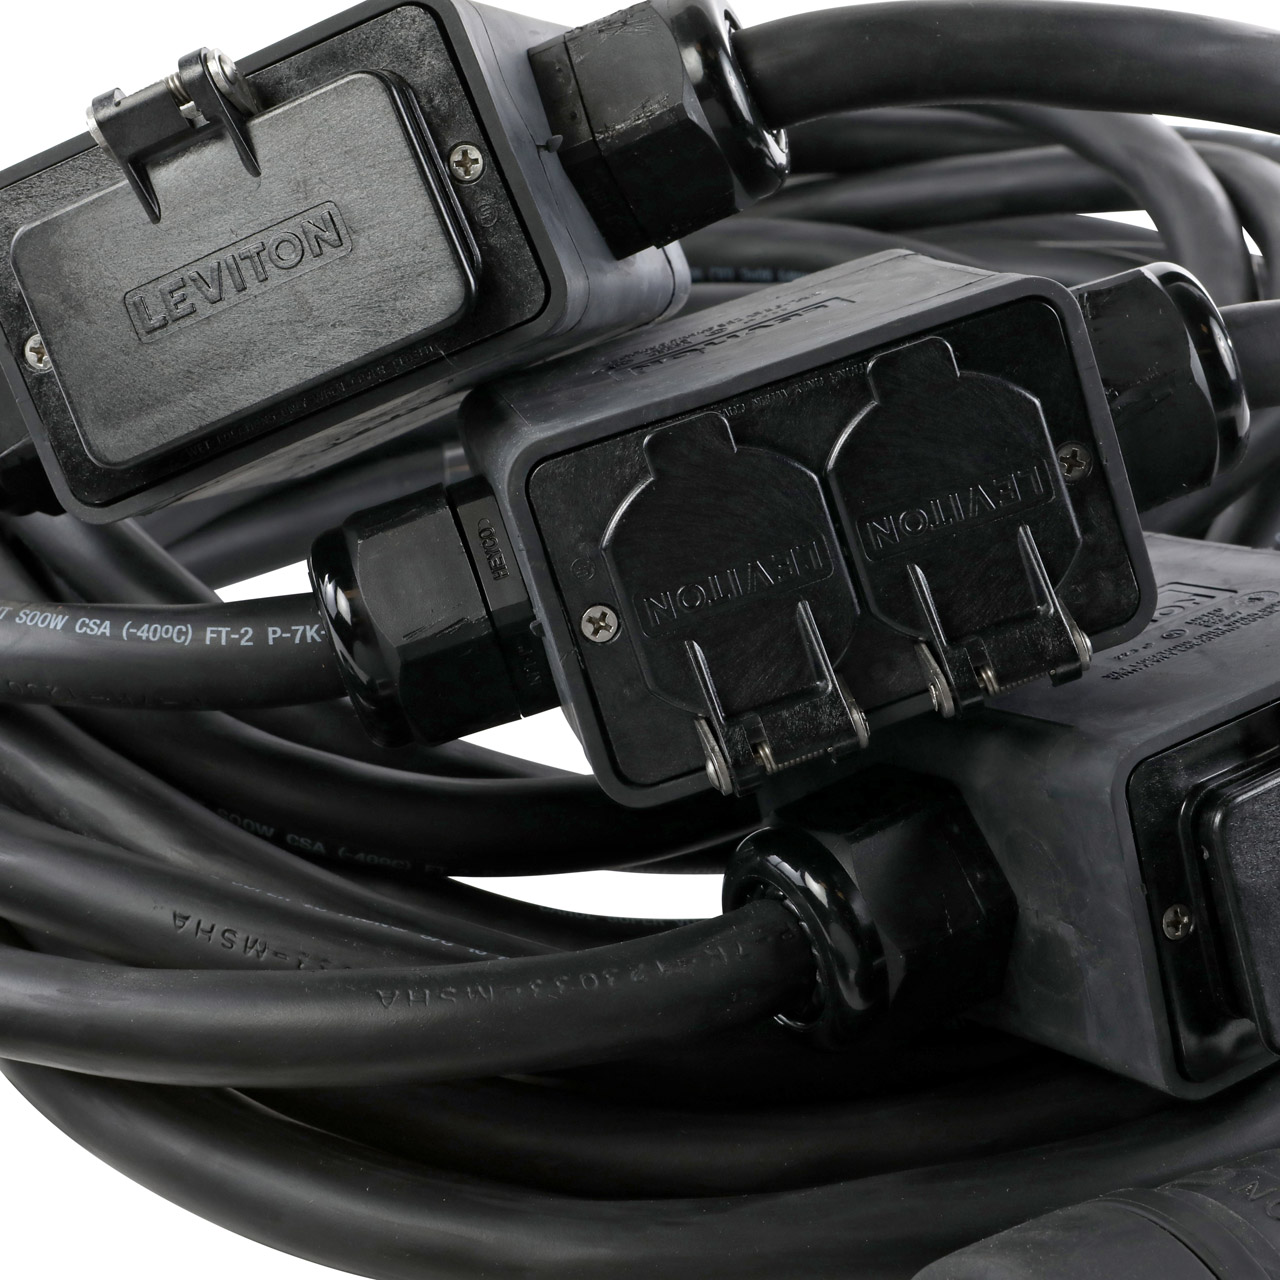 20A (3) Phase GFCI Quad Stringer - Black